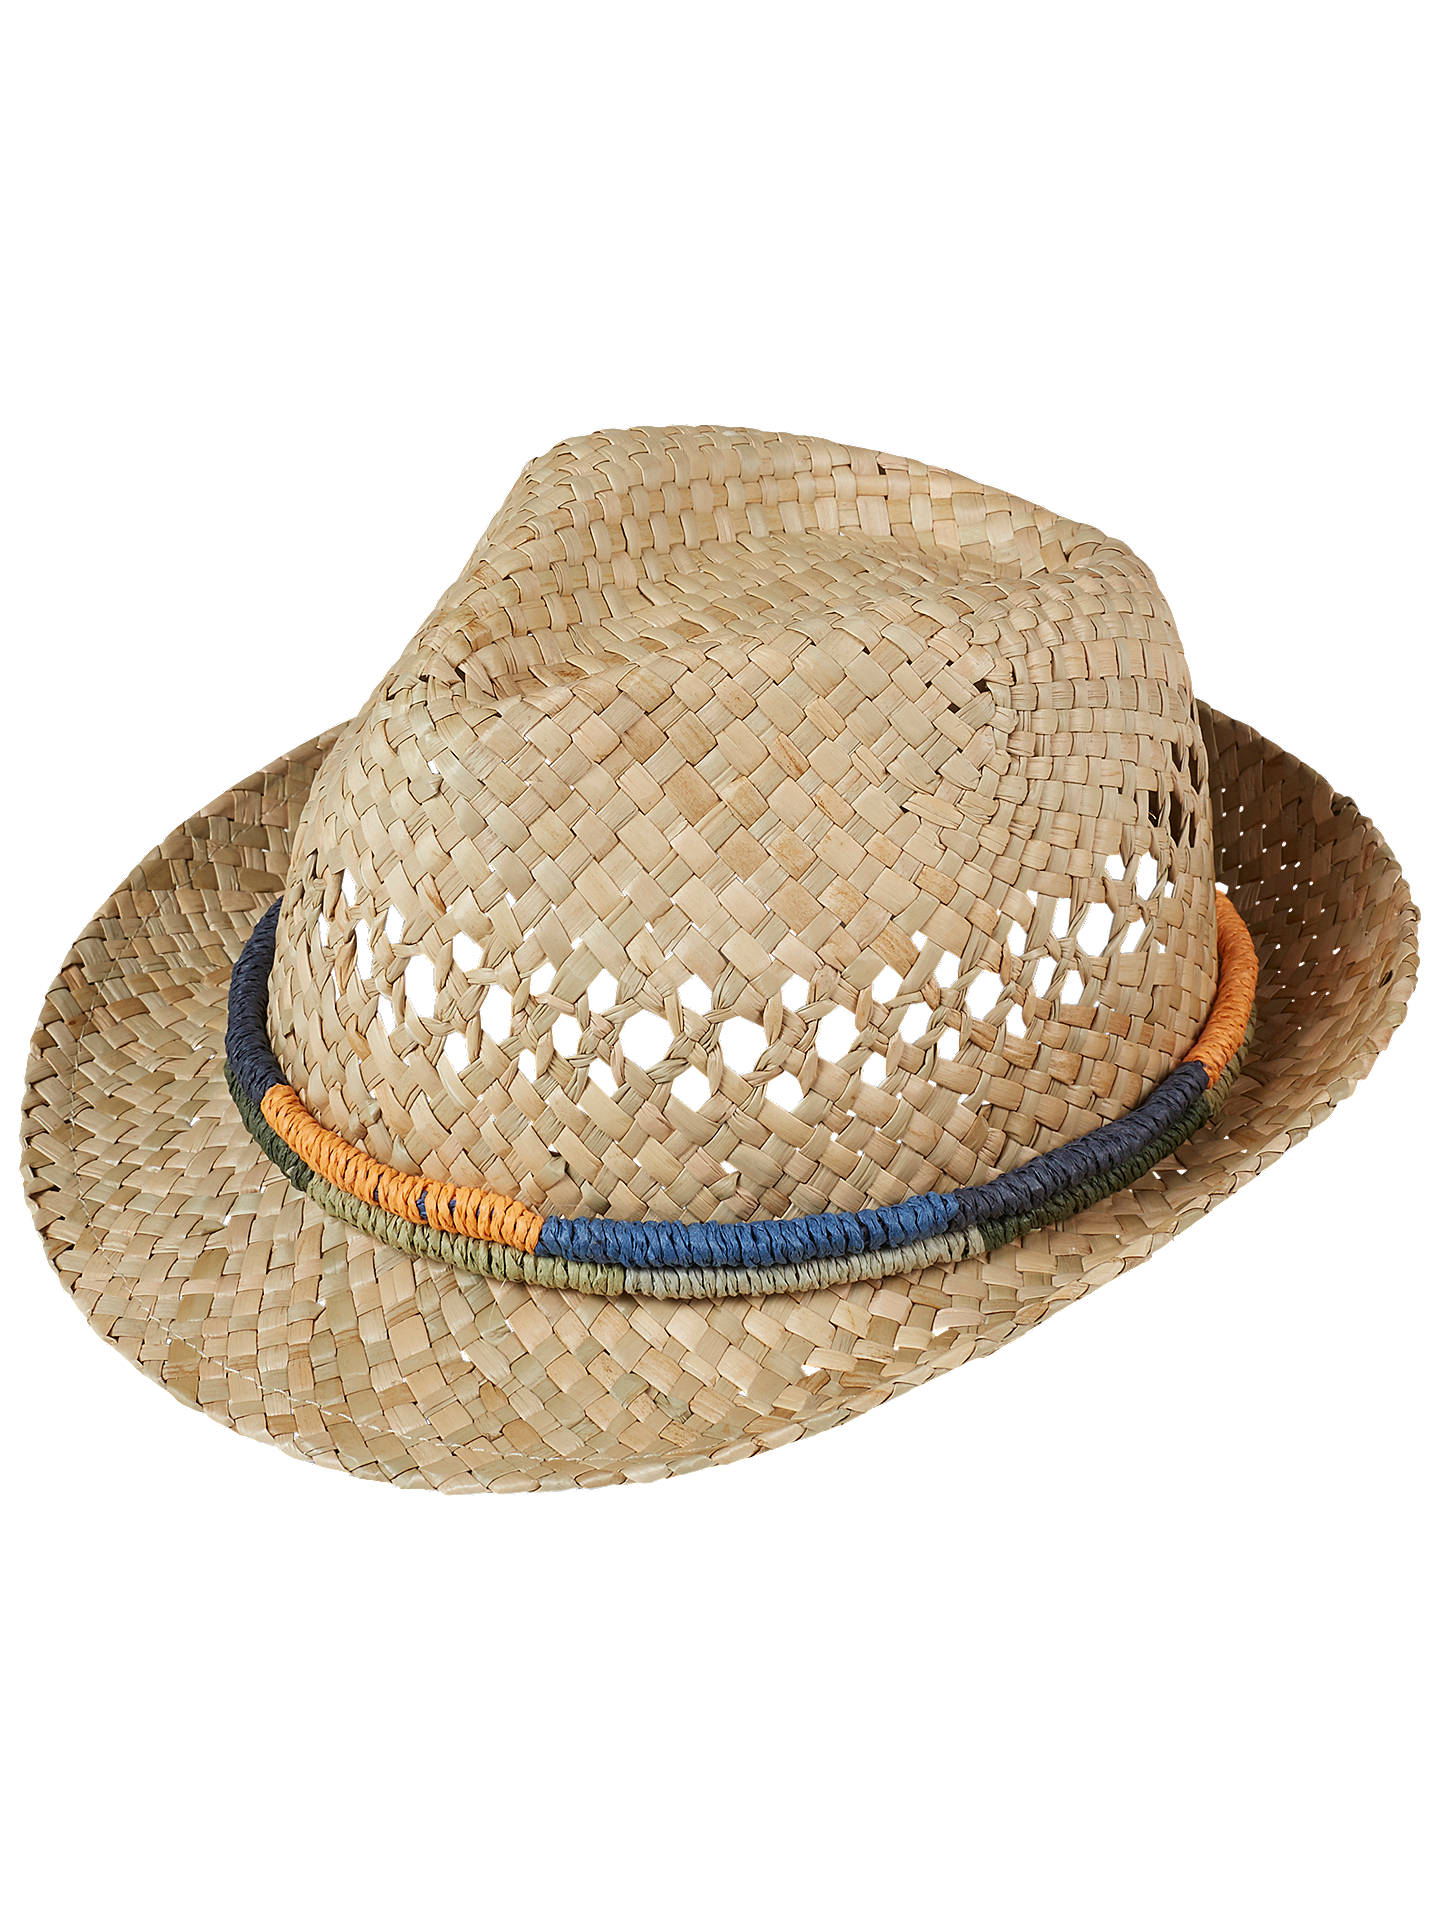 8d5741212a60be Buy Fat Face Children's Woven Band Trilby Hat, Neutral, S Online at  johnlewis.